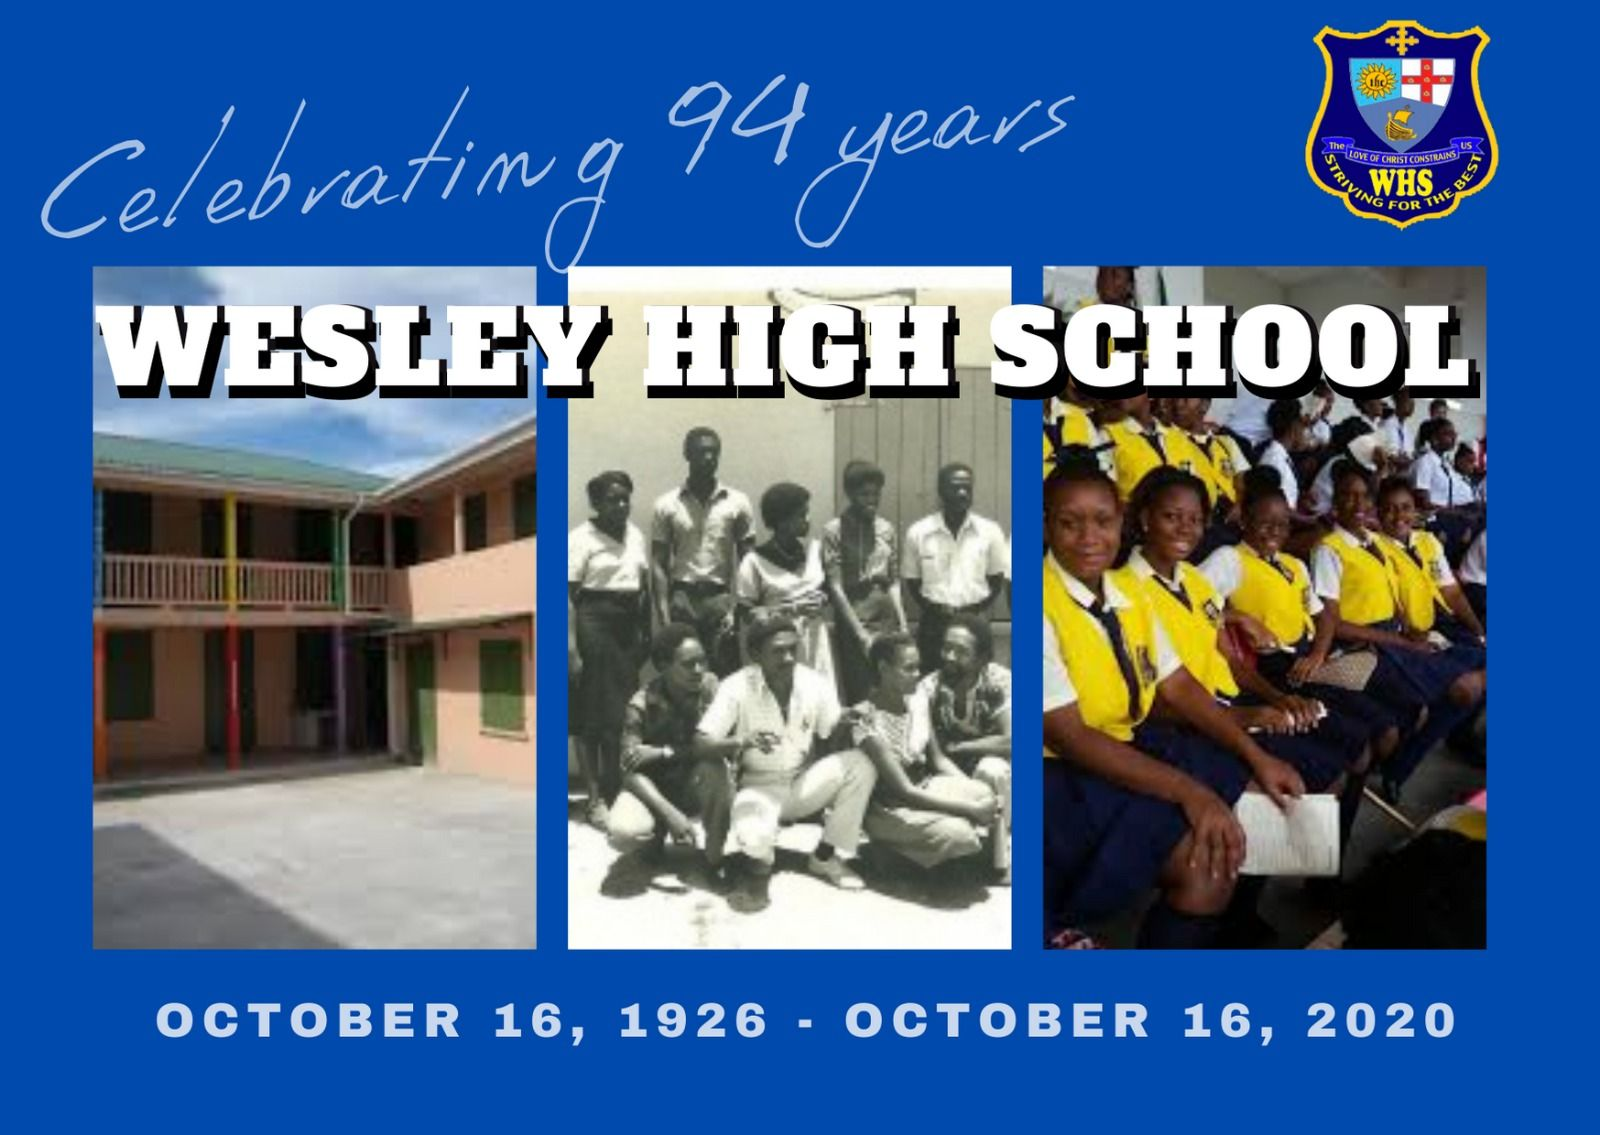 Wesley High School, Dominica - Founders Day: Celebrating 94 Years